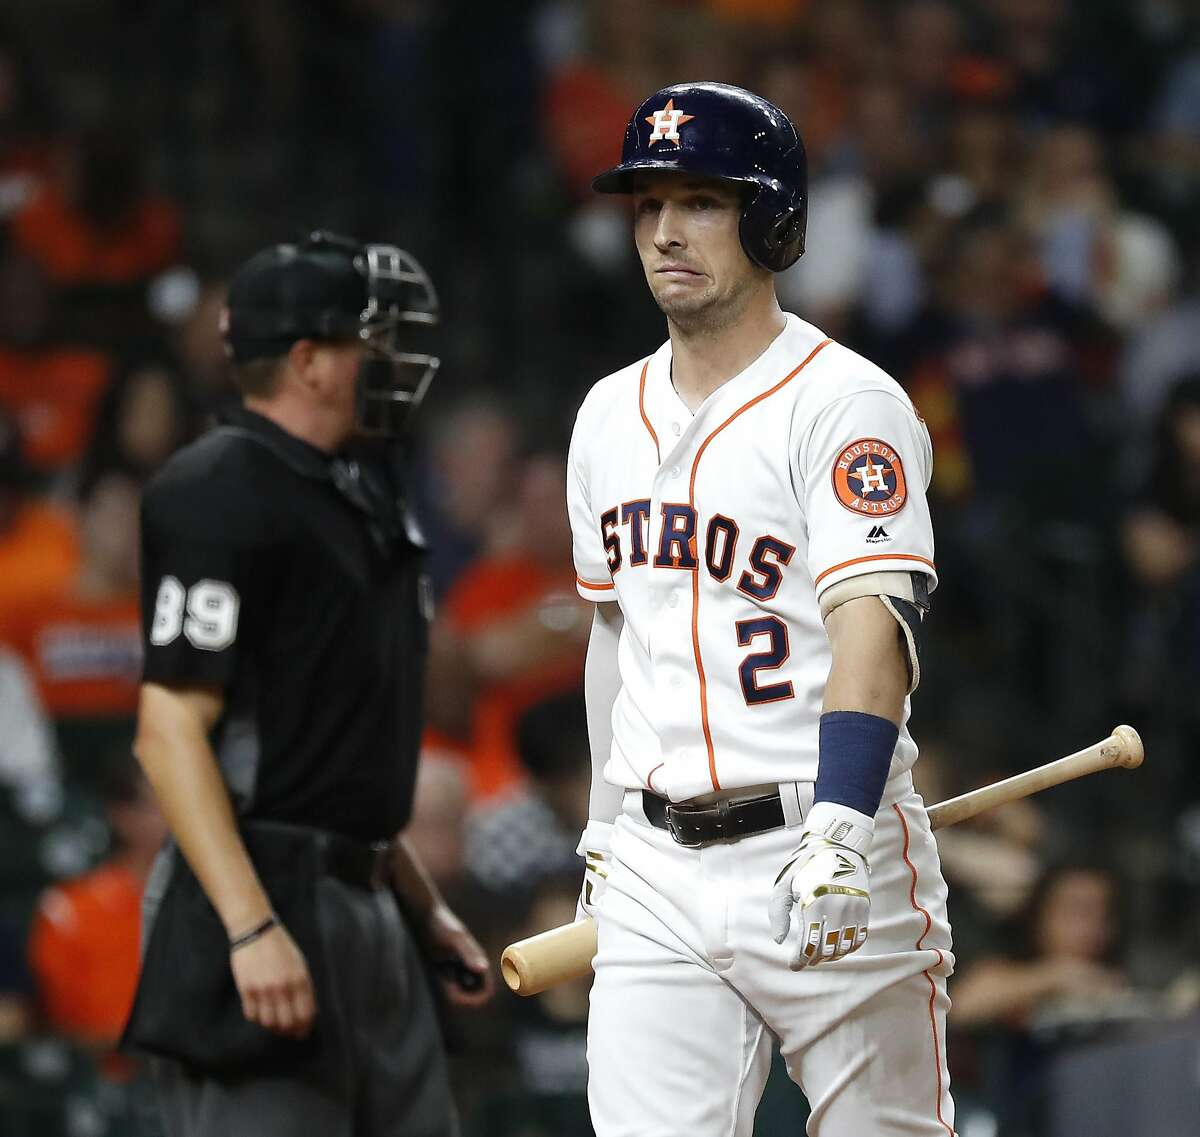 Houston Astros Alex Bregman (2) grimaces after striking out in the sixth inning of a MLB baseball game at Minute Maid Park, Thursday, Sept. 12, 2019, in Houston.